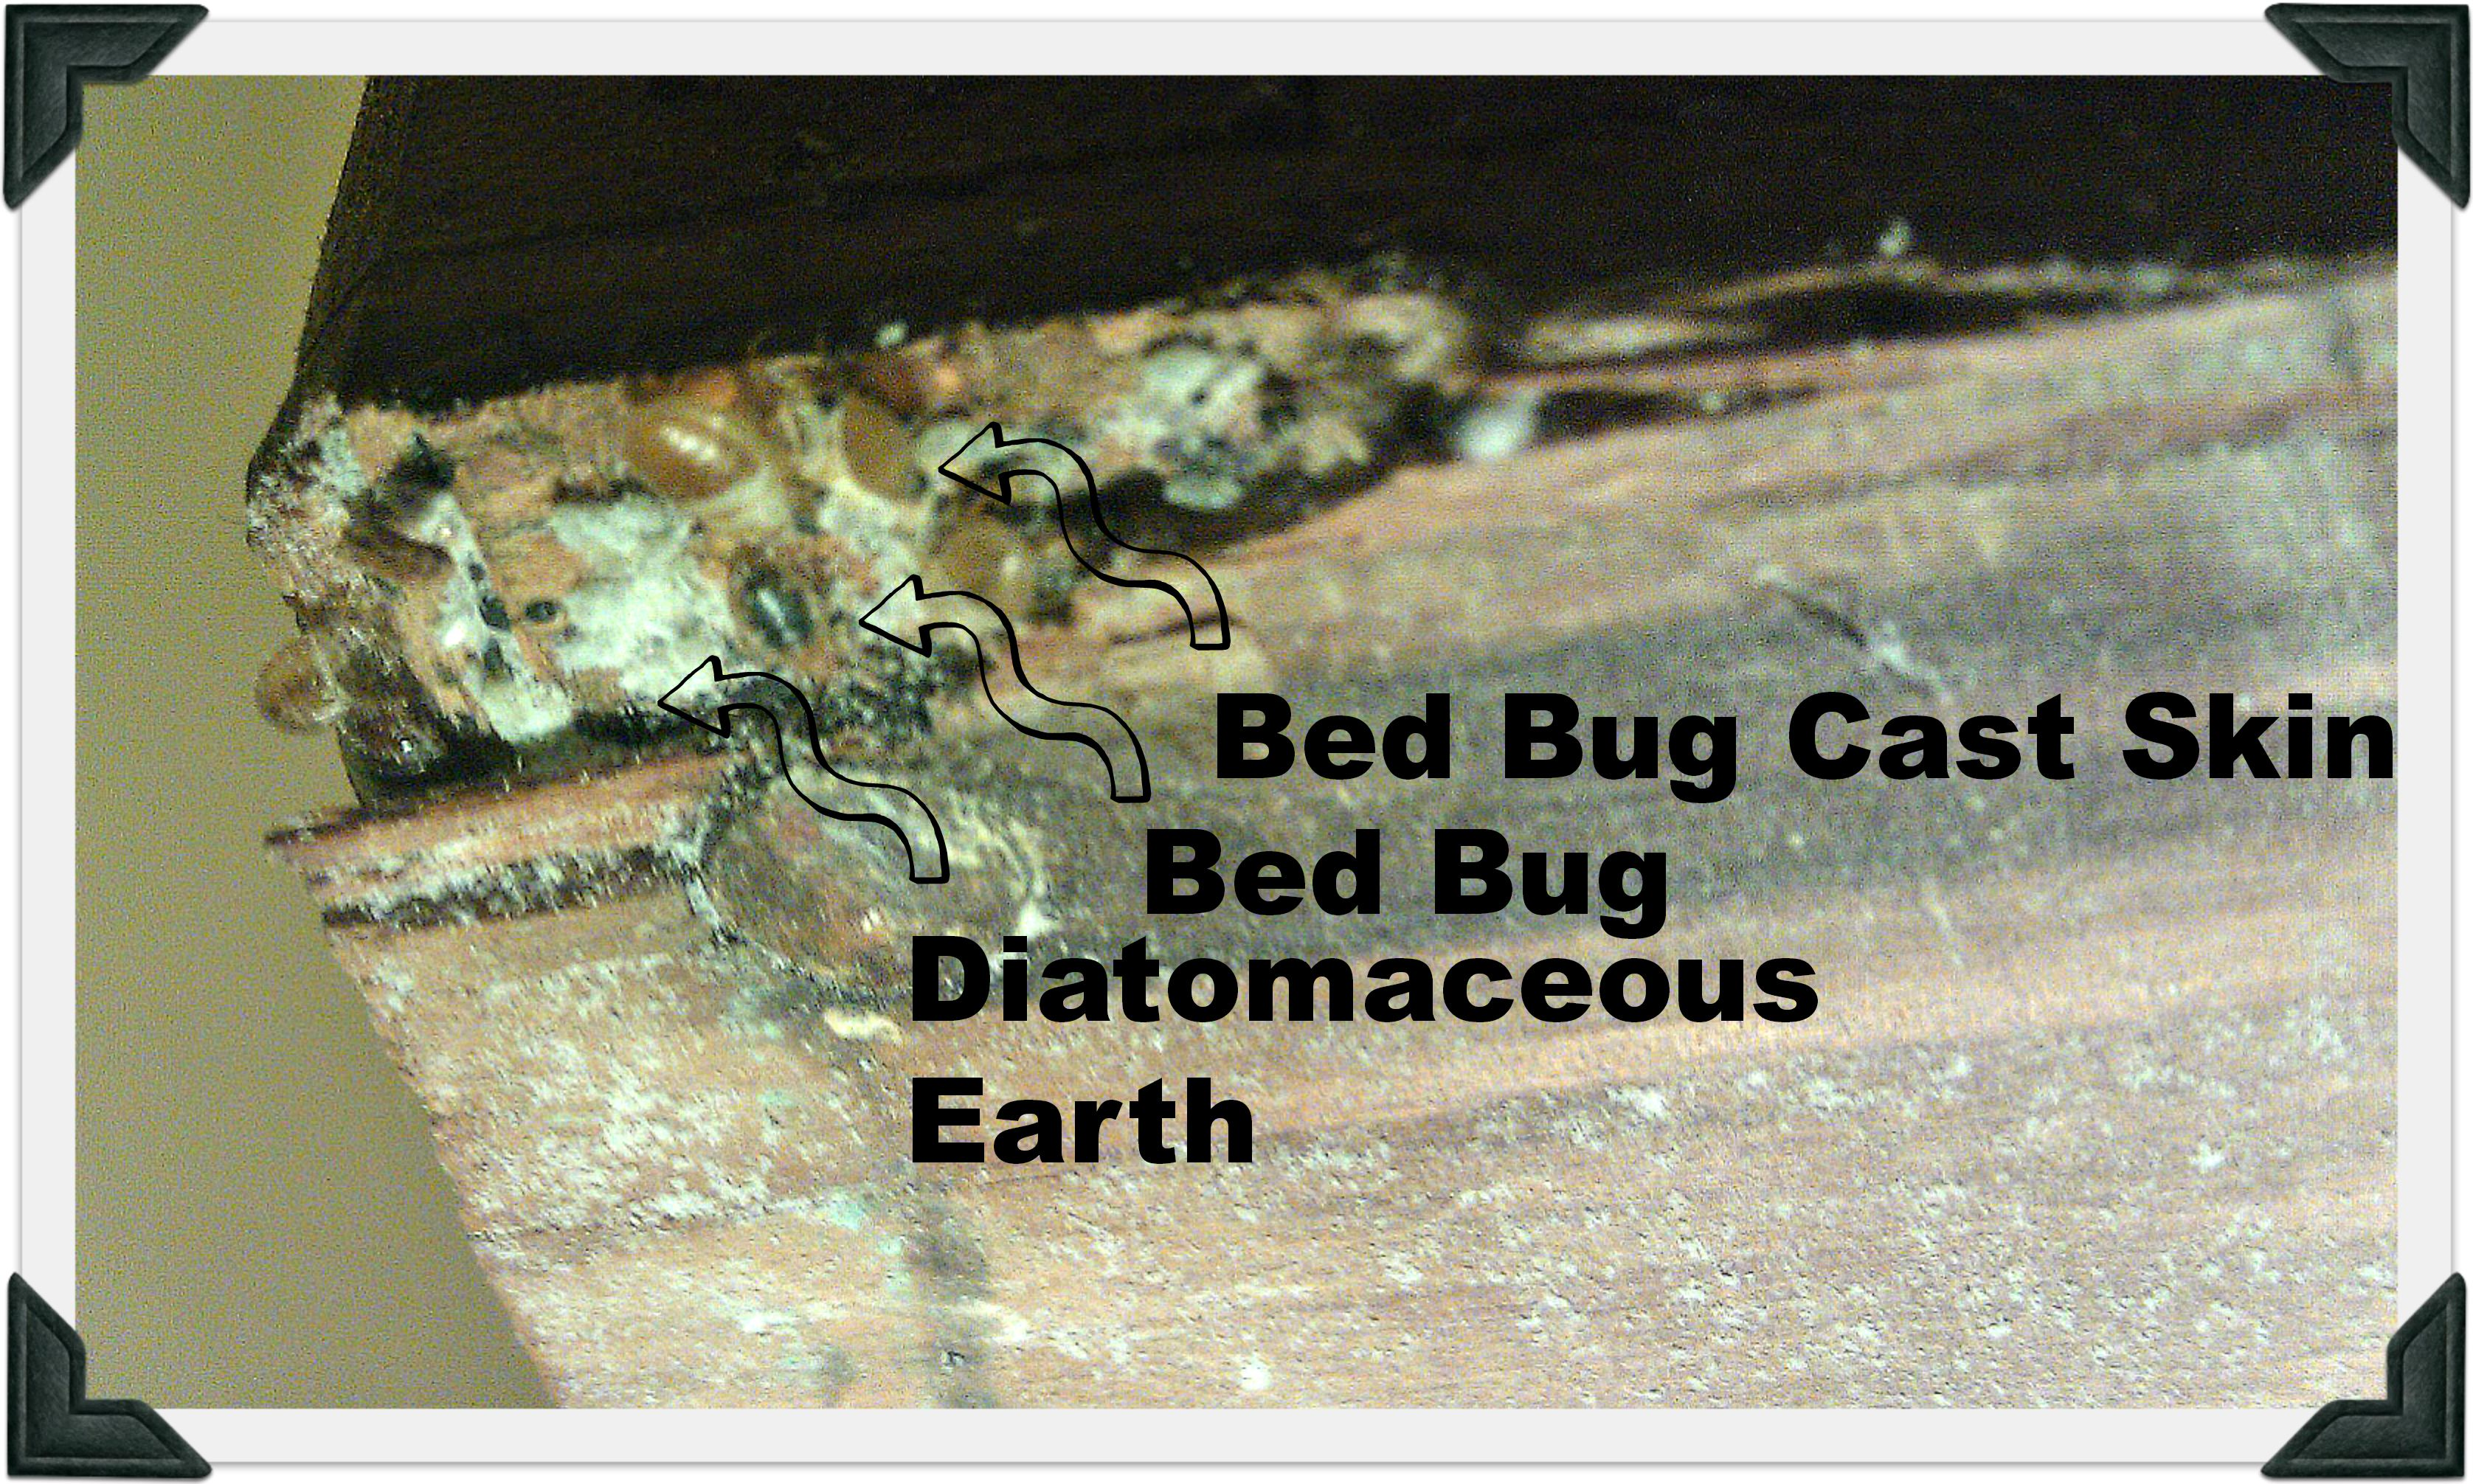 How Diatomaceous Earth Kills Bed Bugs Bed bugs, Bugs, It